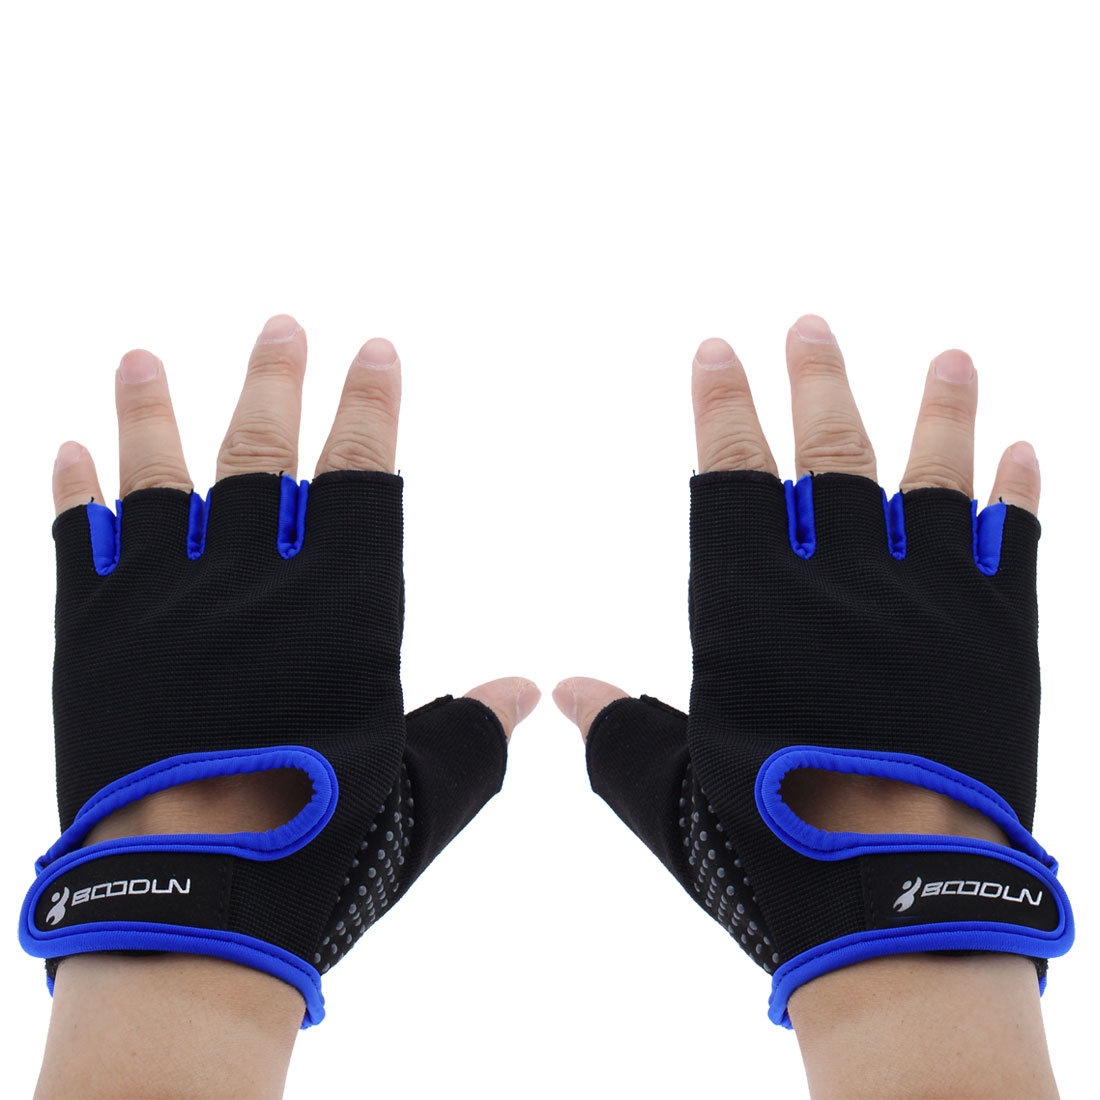 BOODUN Authorized Exercise Weight Biking Lifting Training Microfiber Non-slip Fitness Half Finger Gloves Blue L